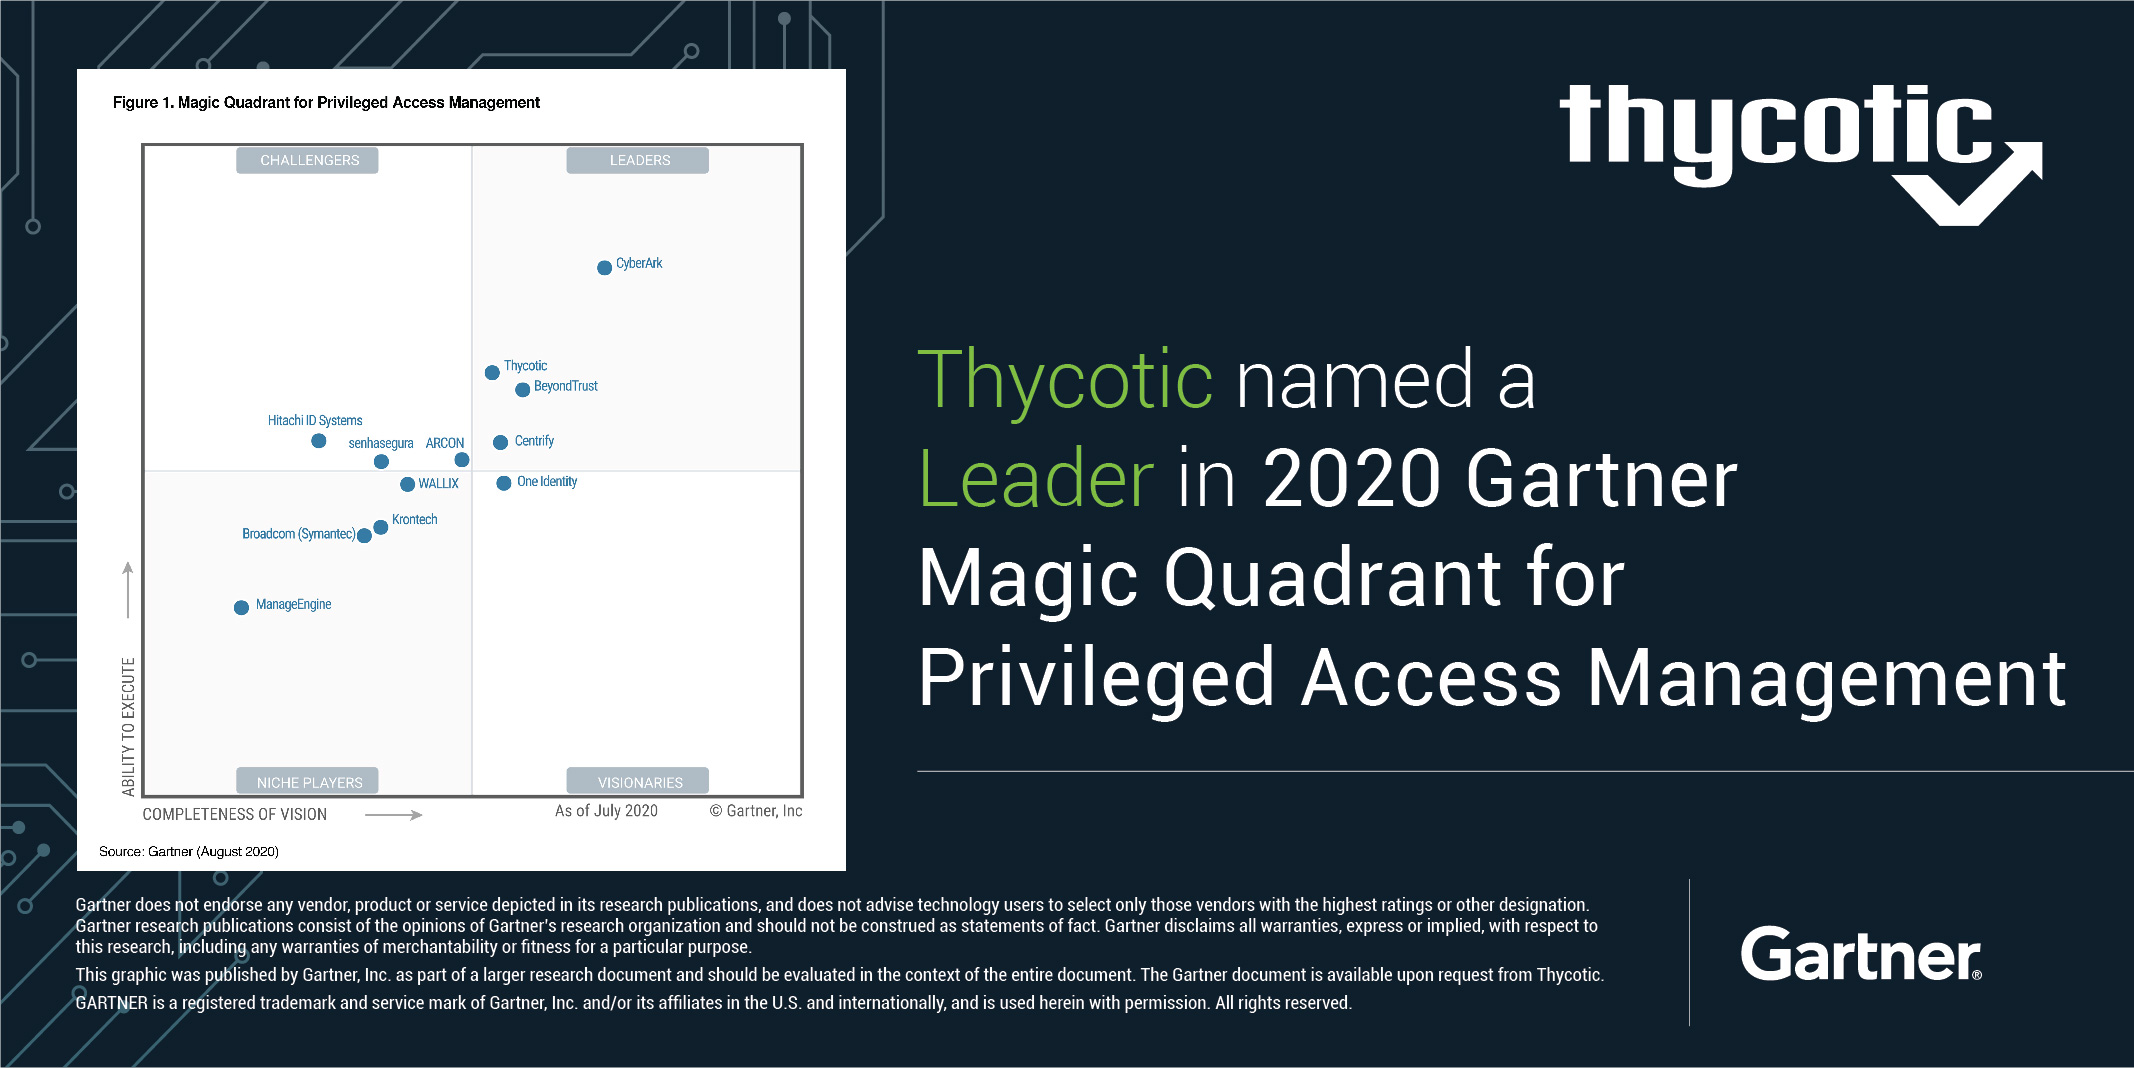 Thycotic named a leader in 2020 Gartner PAM Magic Quadrant